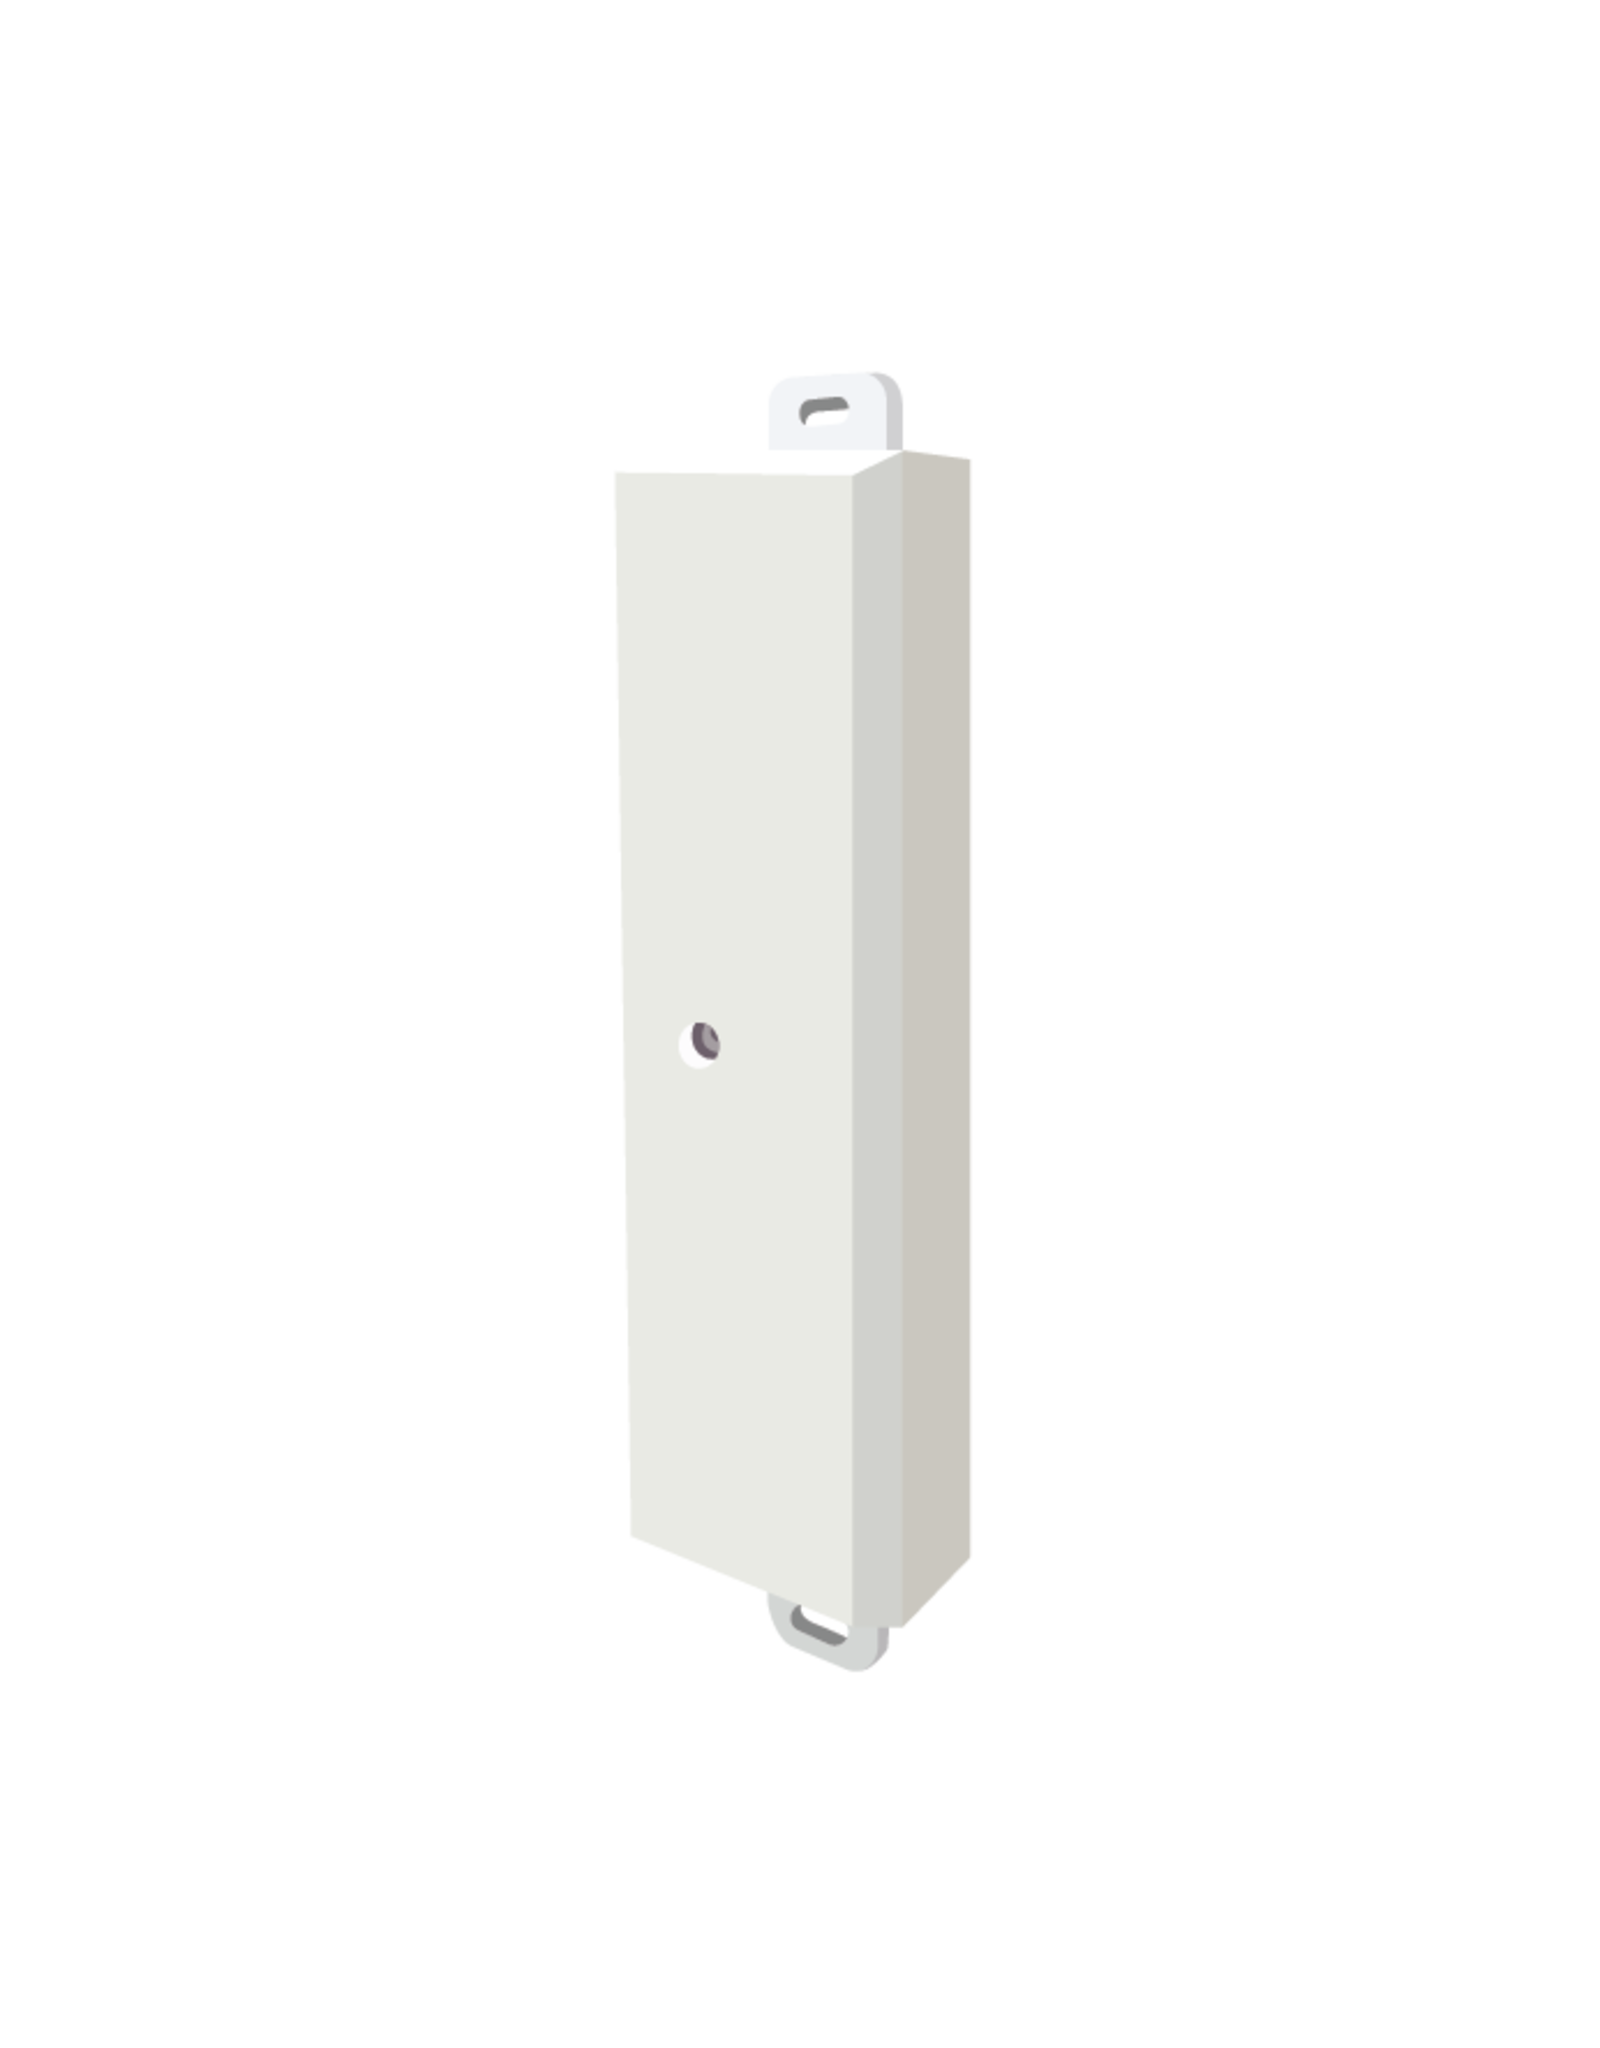 Pro1 Wireless Outdoor Temperature Sensor applicable to Z955W or T955WH